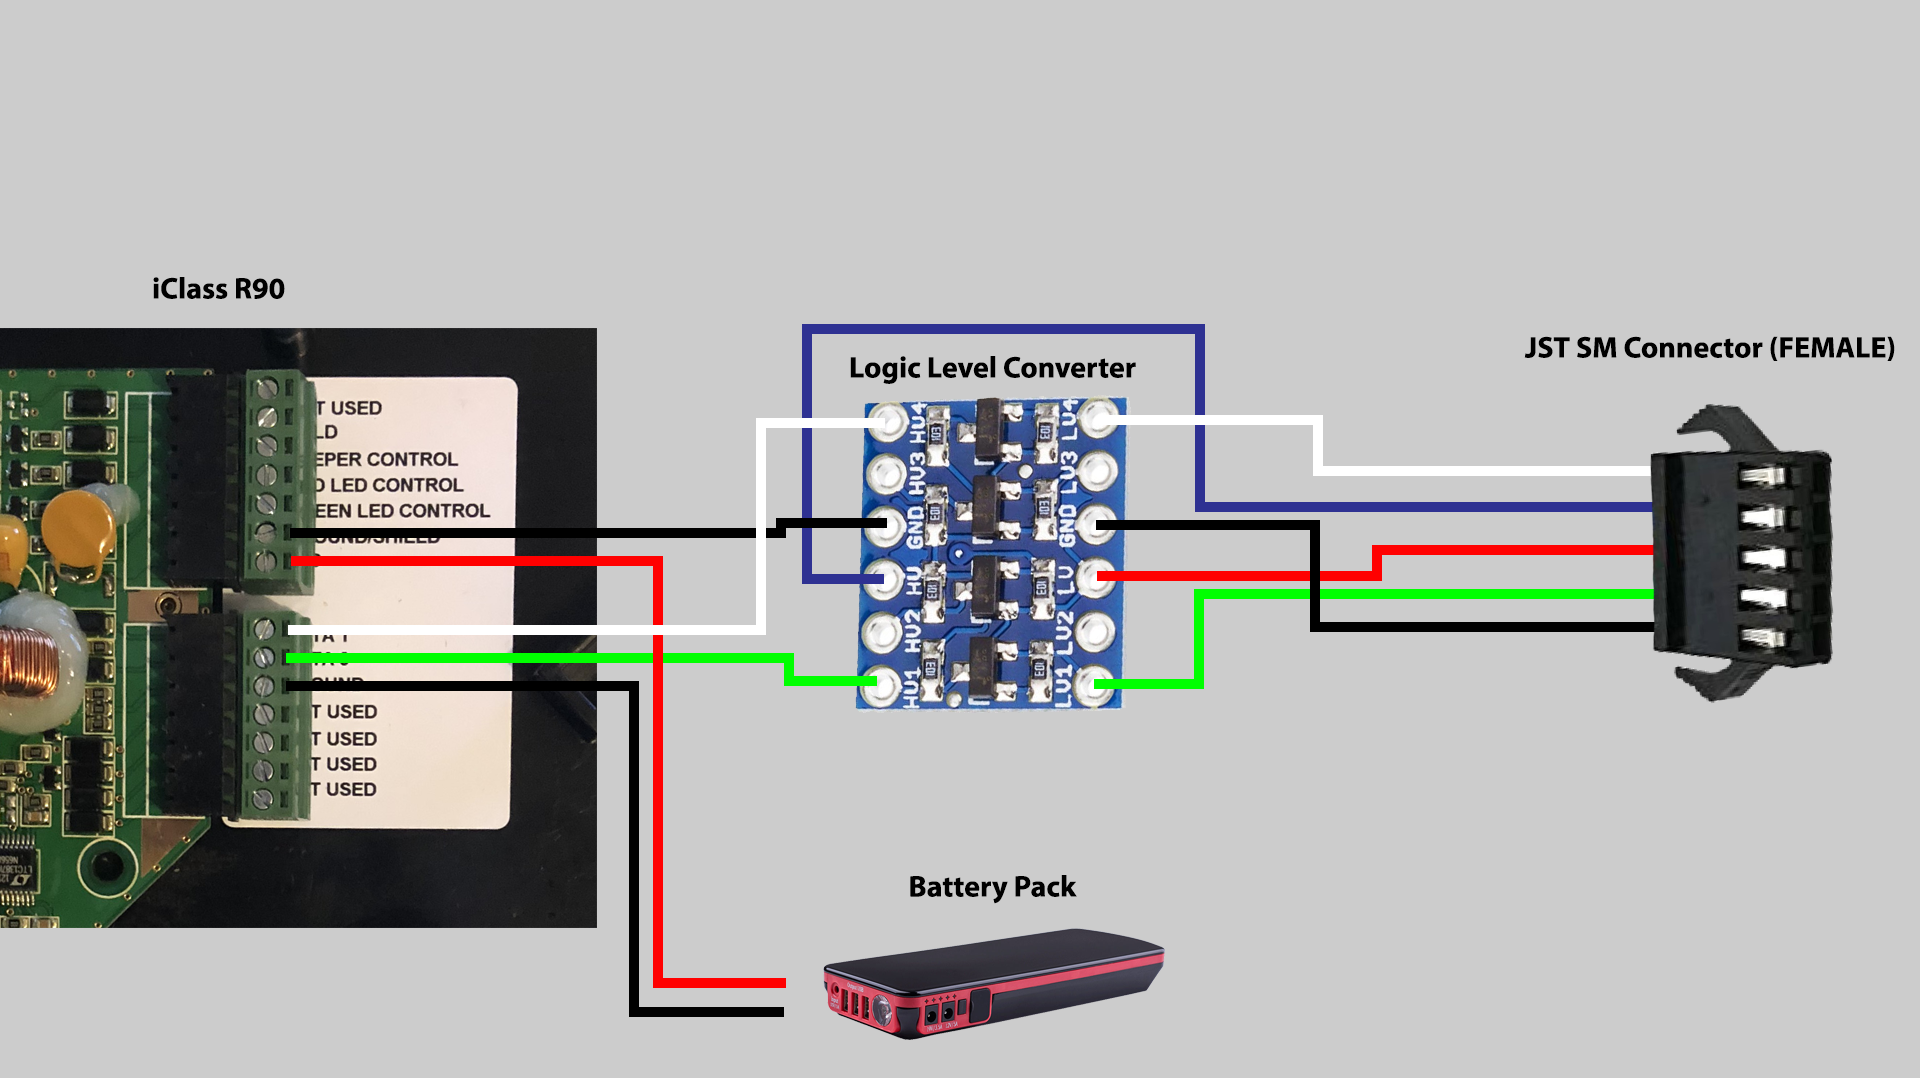 r90_wiring Raspberry Pi Wiring Diagram on temperature sensor, hiletgo max7219, ppd42ns, diagram adafruit power boost 1000c, relay board, dual temperature sensor, arduino humidity sensor,